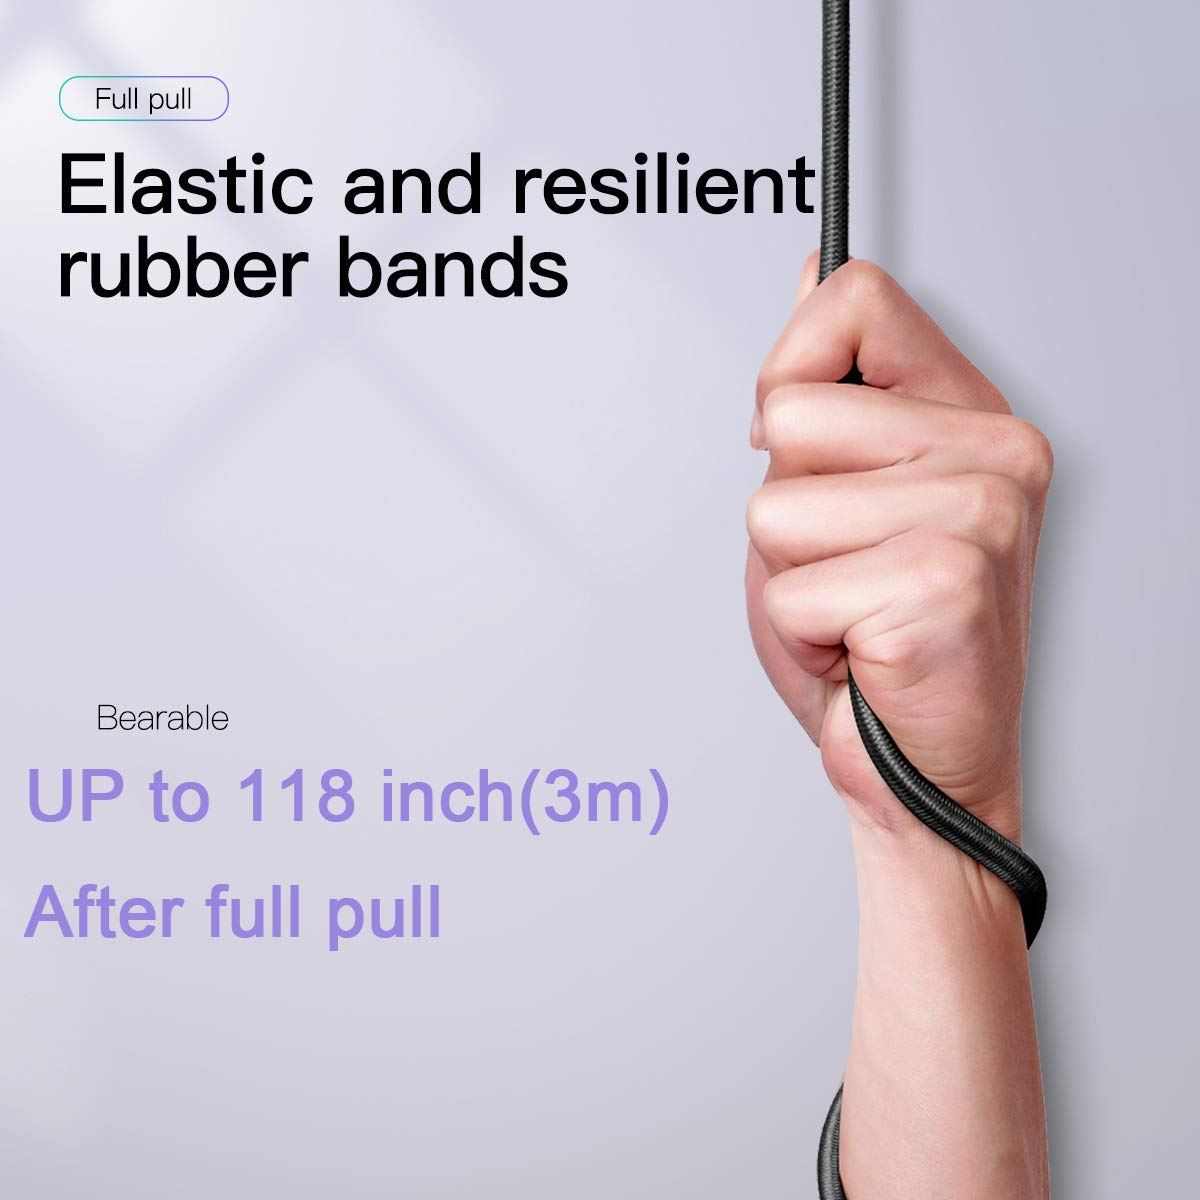 59 inch//1.5m Elastic Straps with Carabiner Hooks Retractable Travel Clothesline Buluby 3 Pack Bungee Cords with Hooks